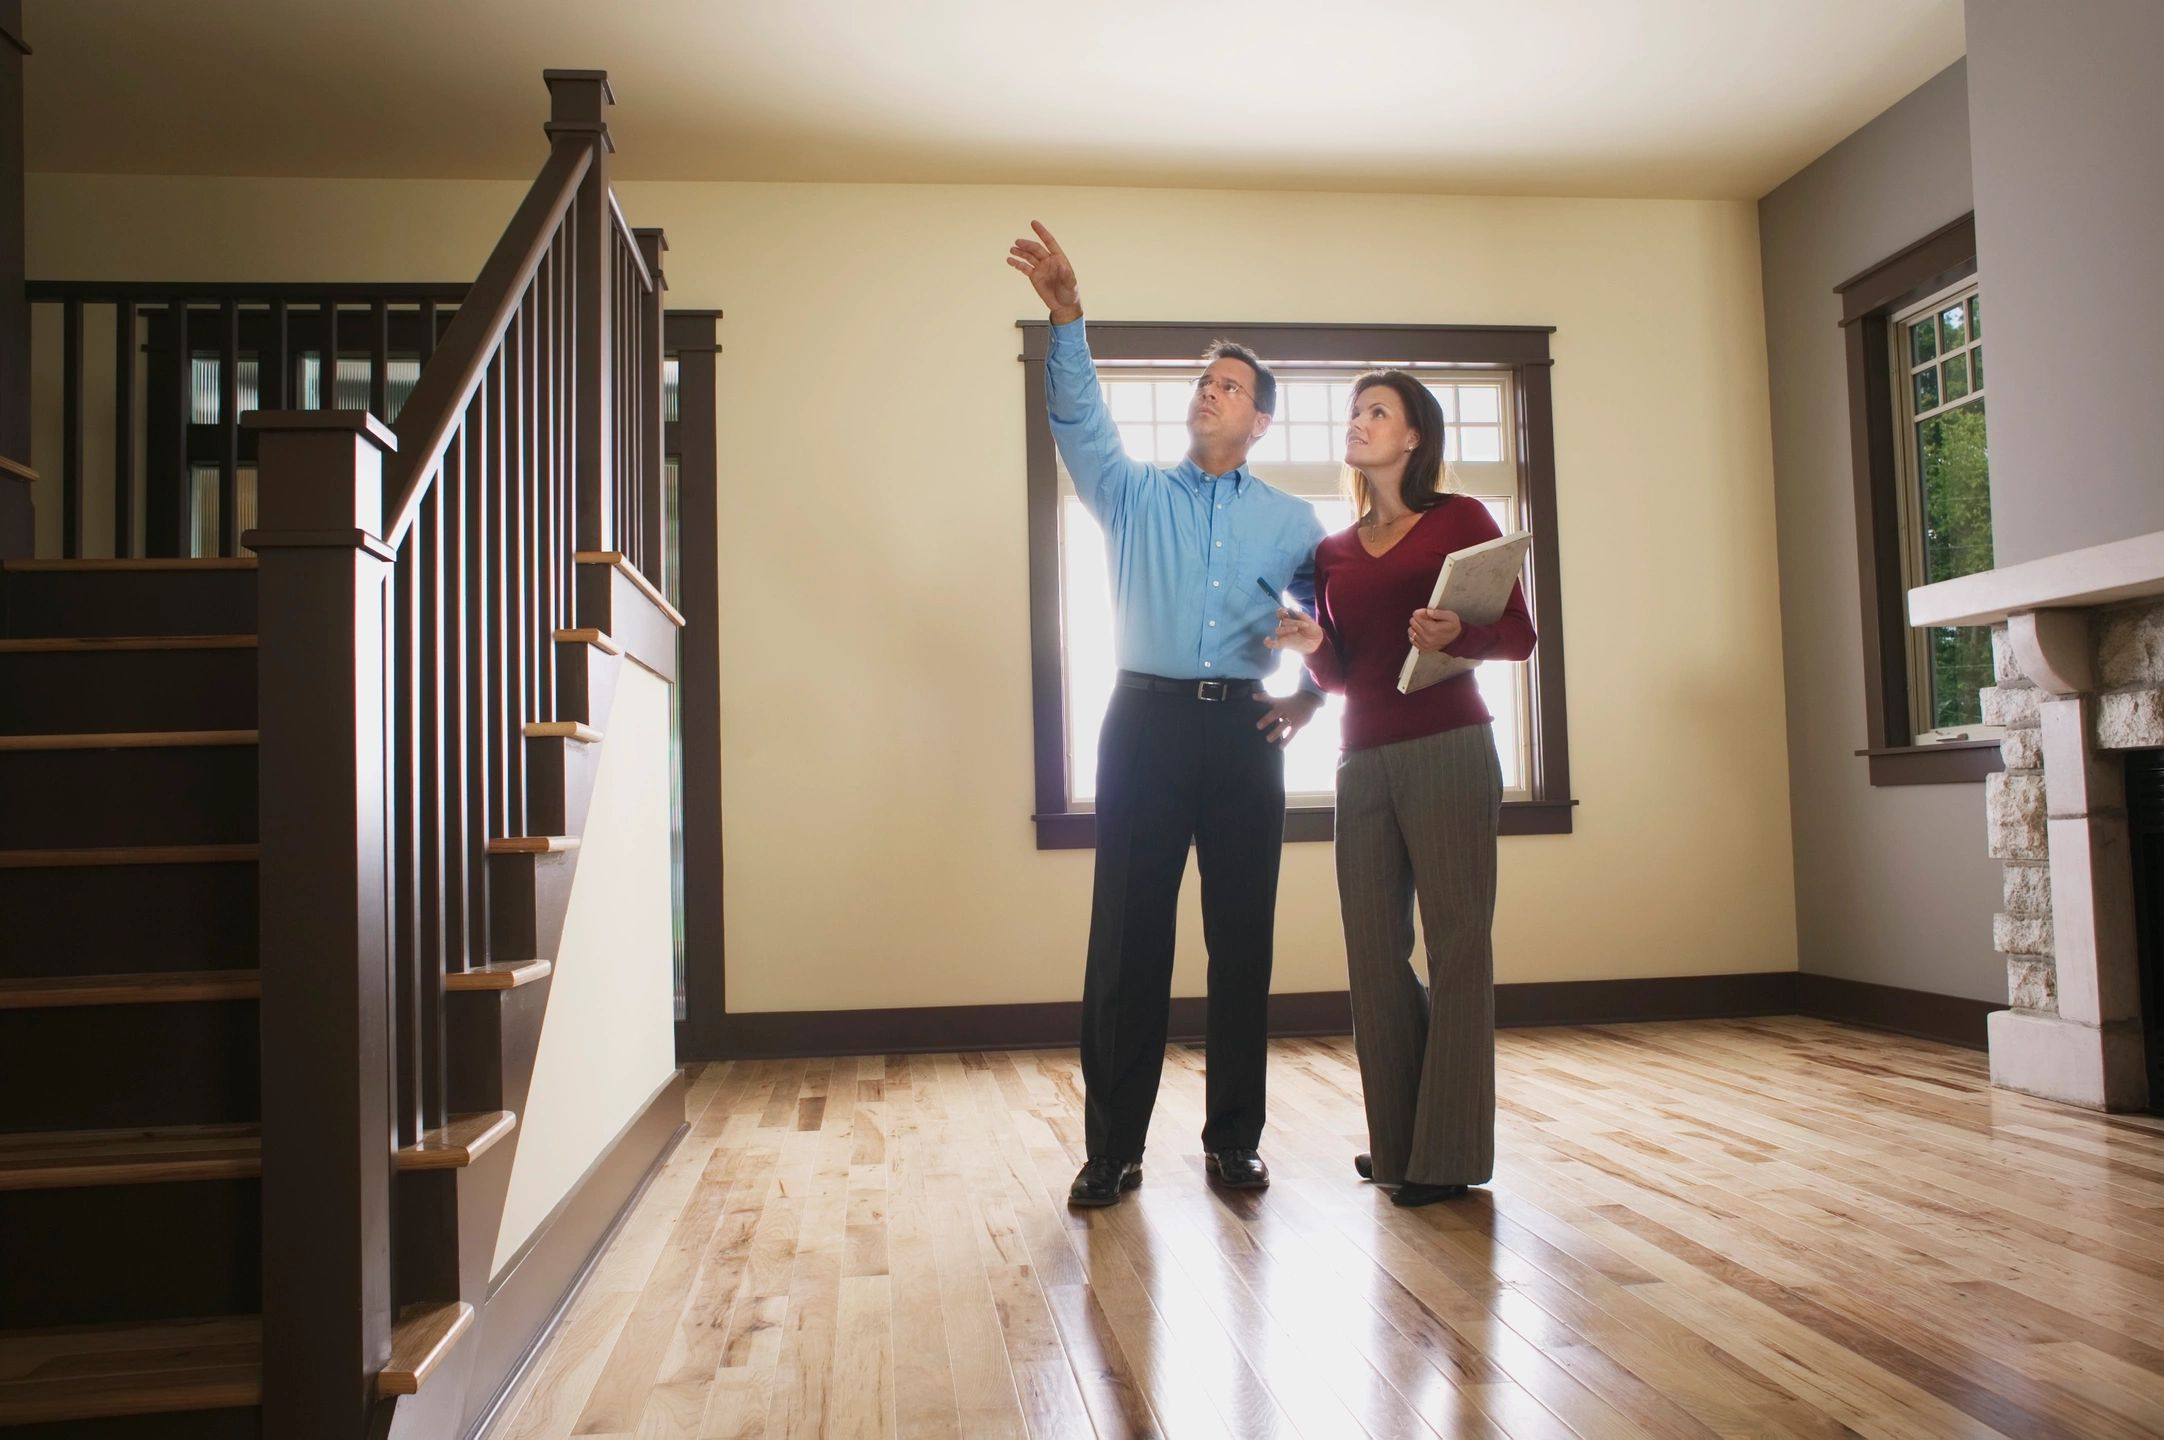 ask all your house painting questions with a professional painter when they provide you with an estimate